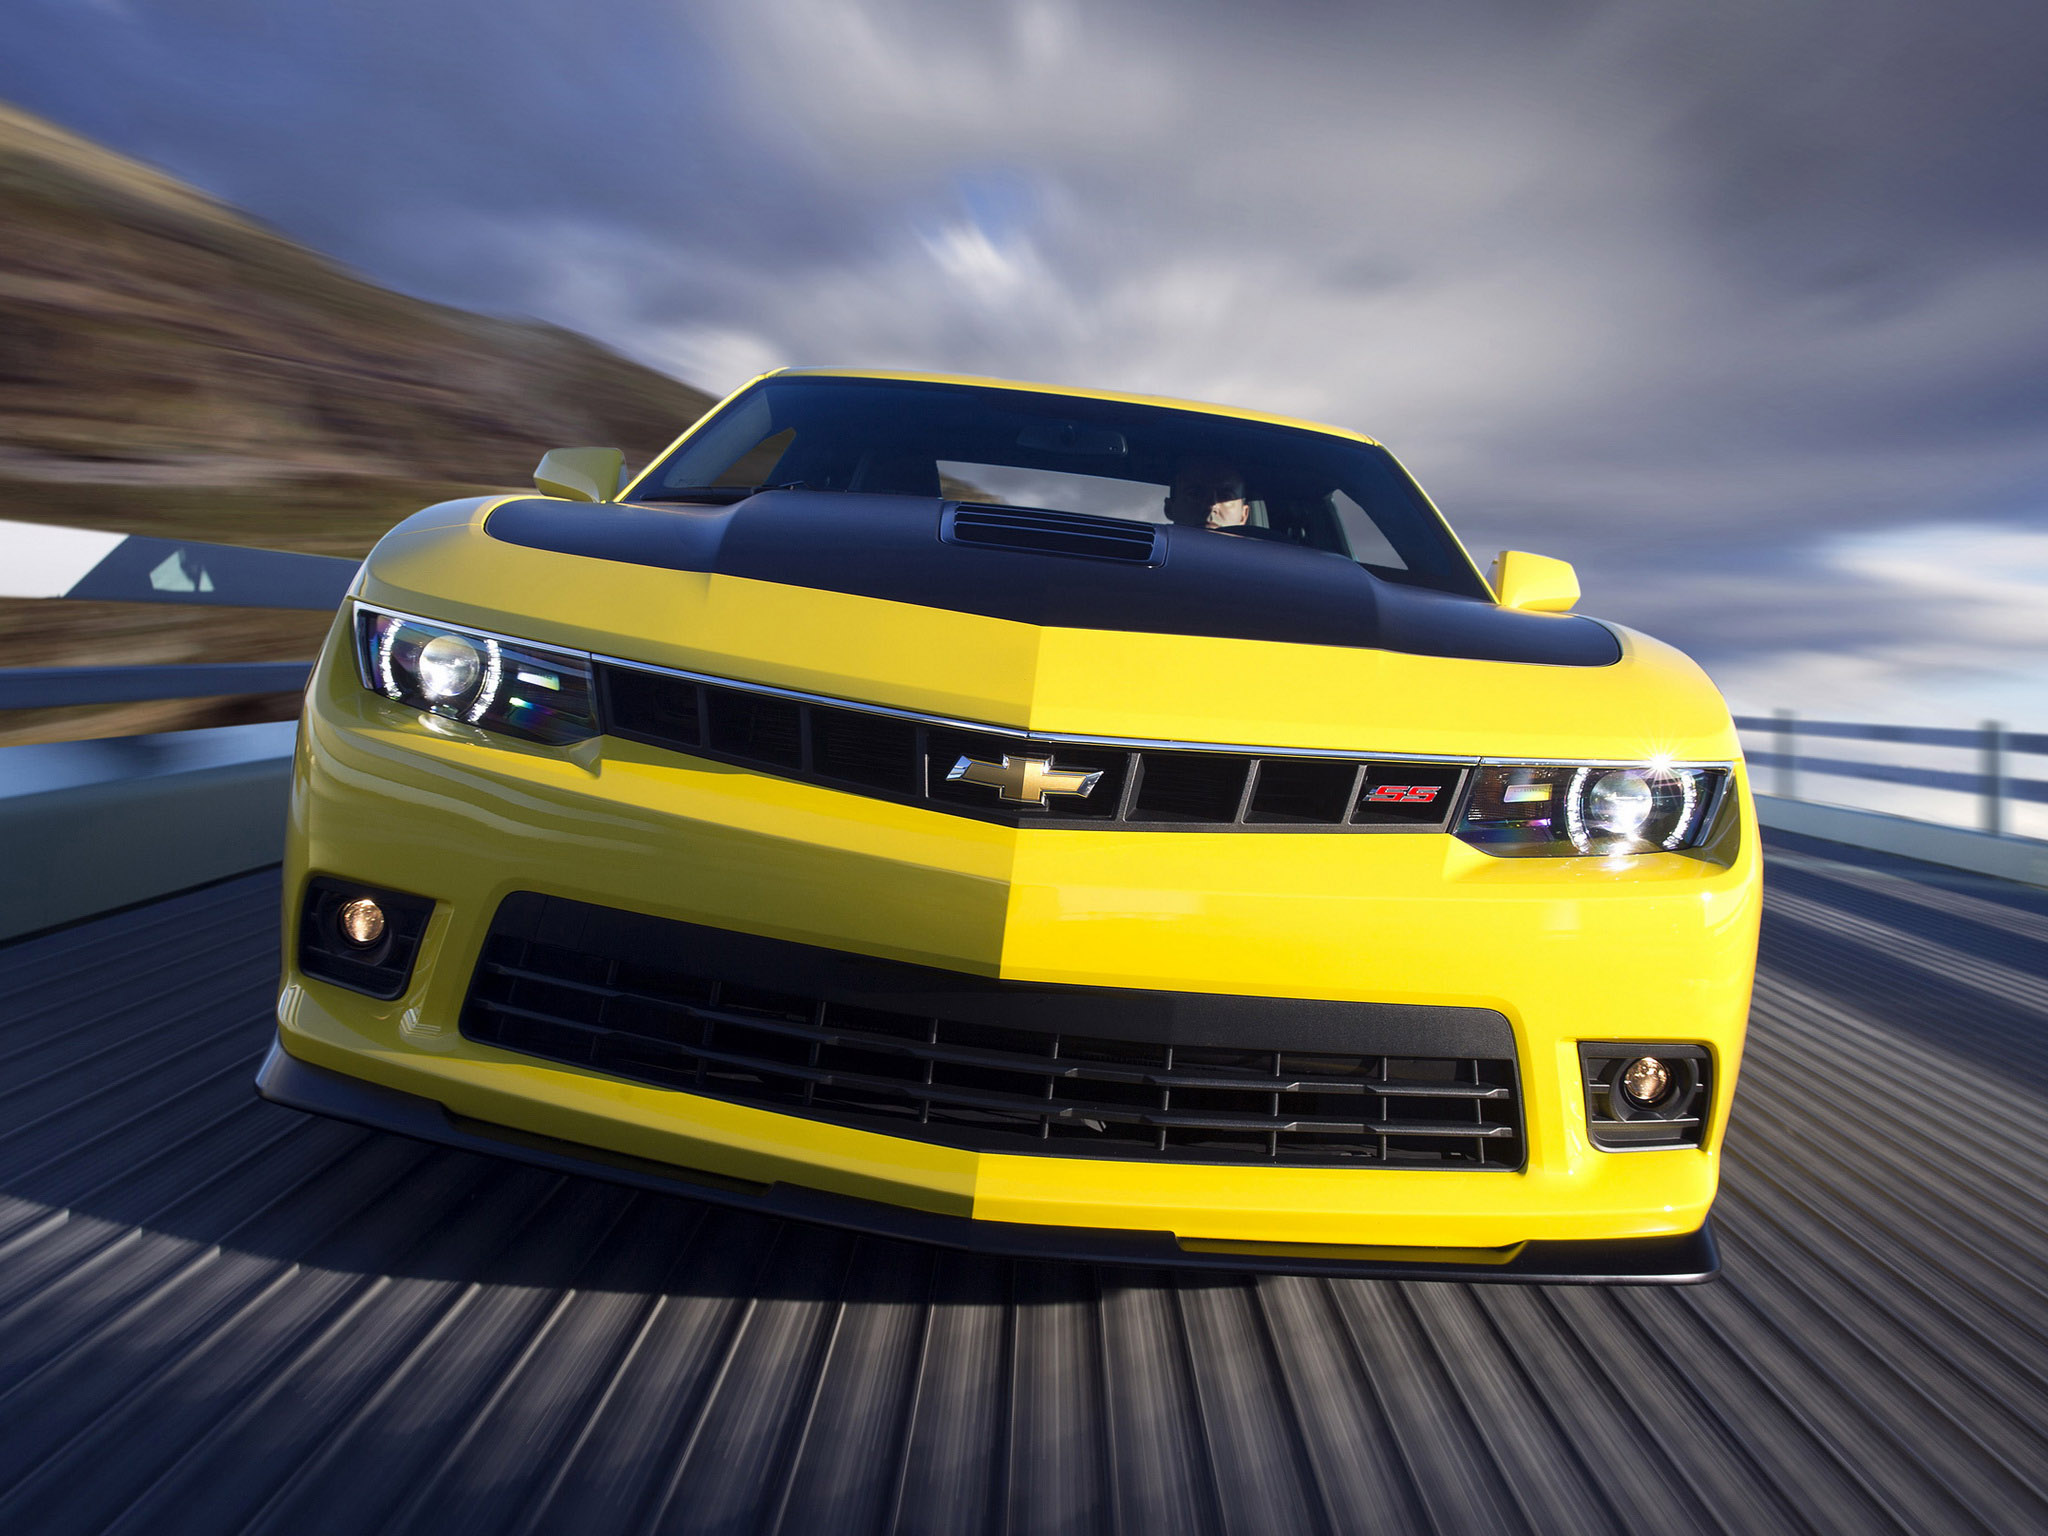 2014 chevrolet camaro ss 1le muscle s s g wallpaper 2048x1536 168666 wallpaperup - Camaro 2014 Z28 Wallpaper